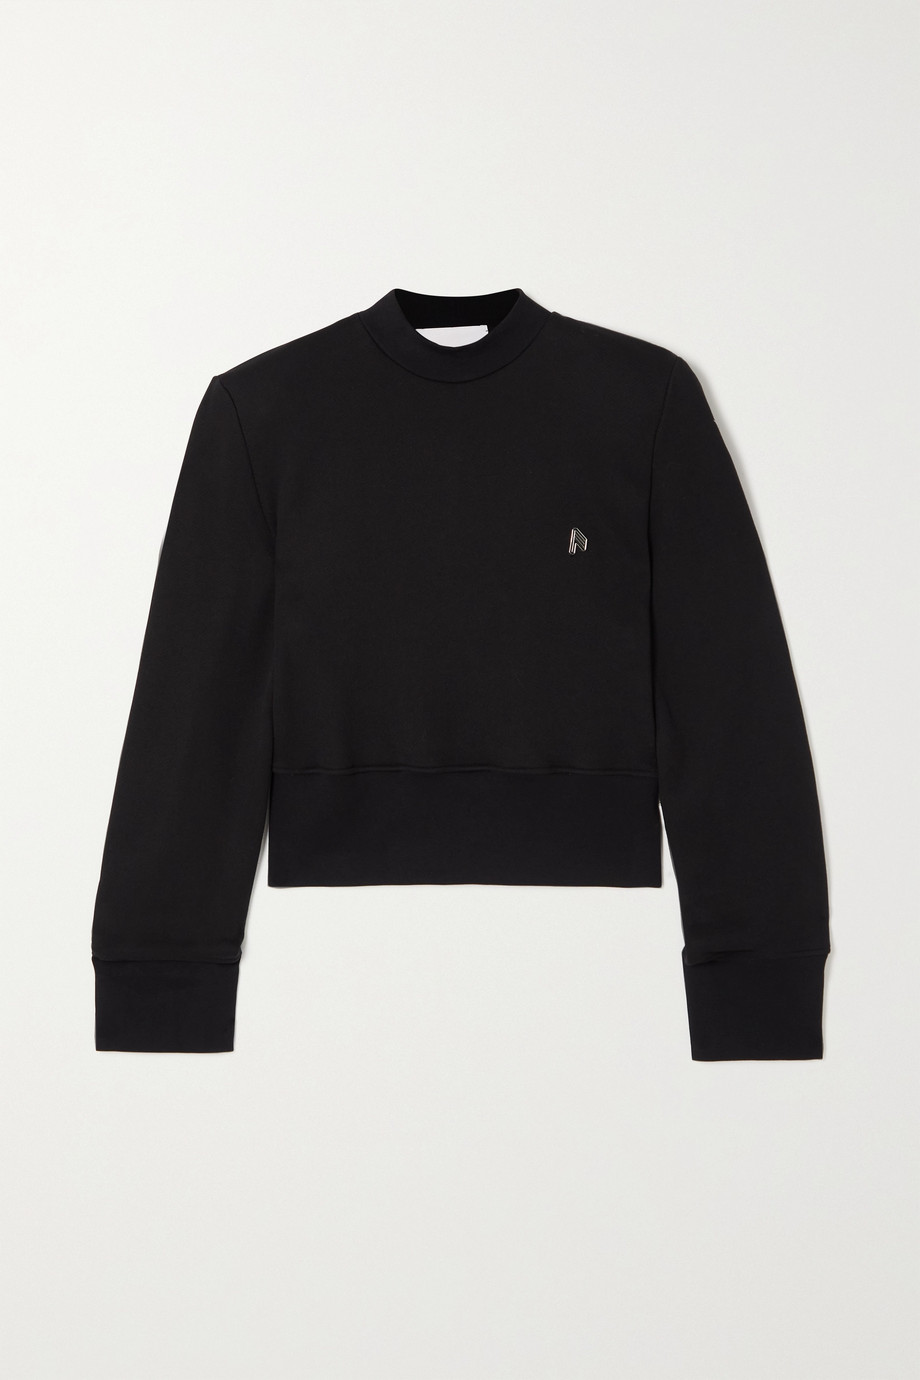 The Attico Kenna appliquéd cotton-jersey sweatshirt